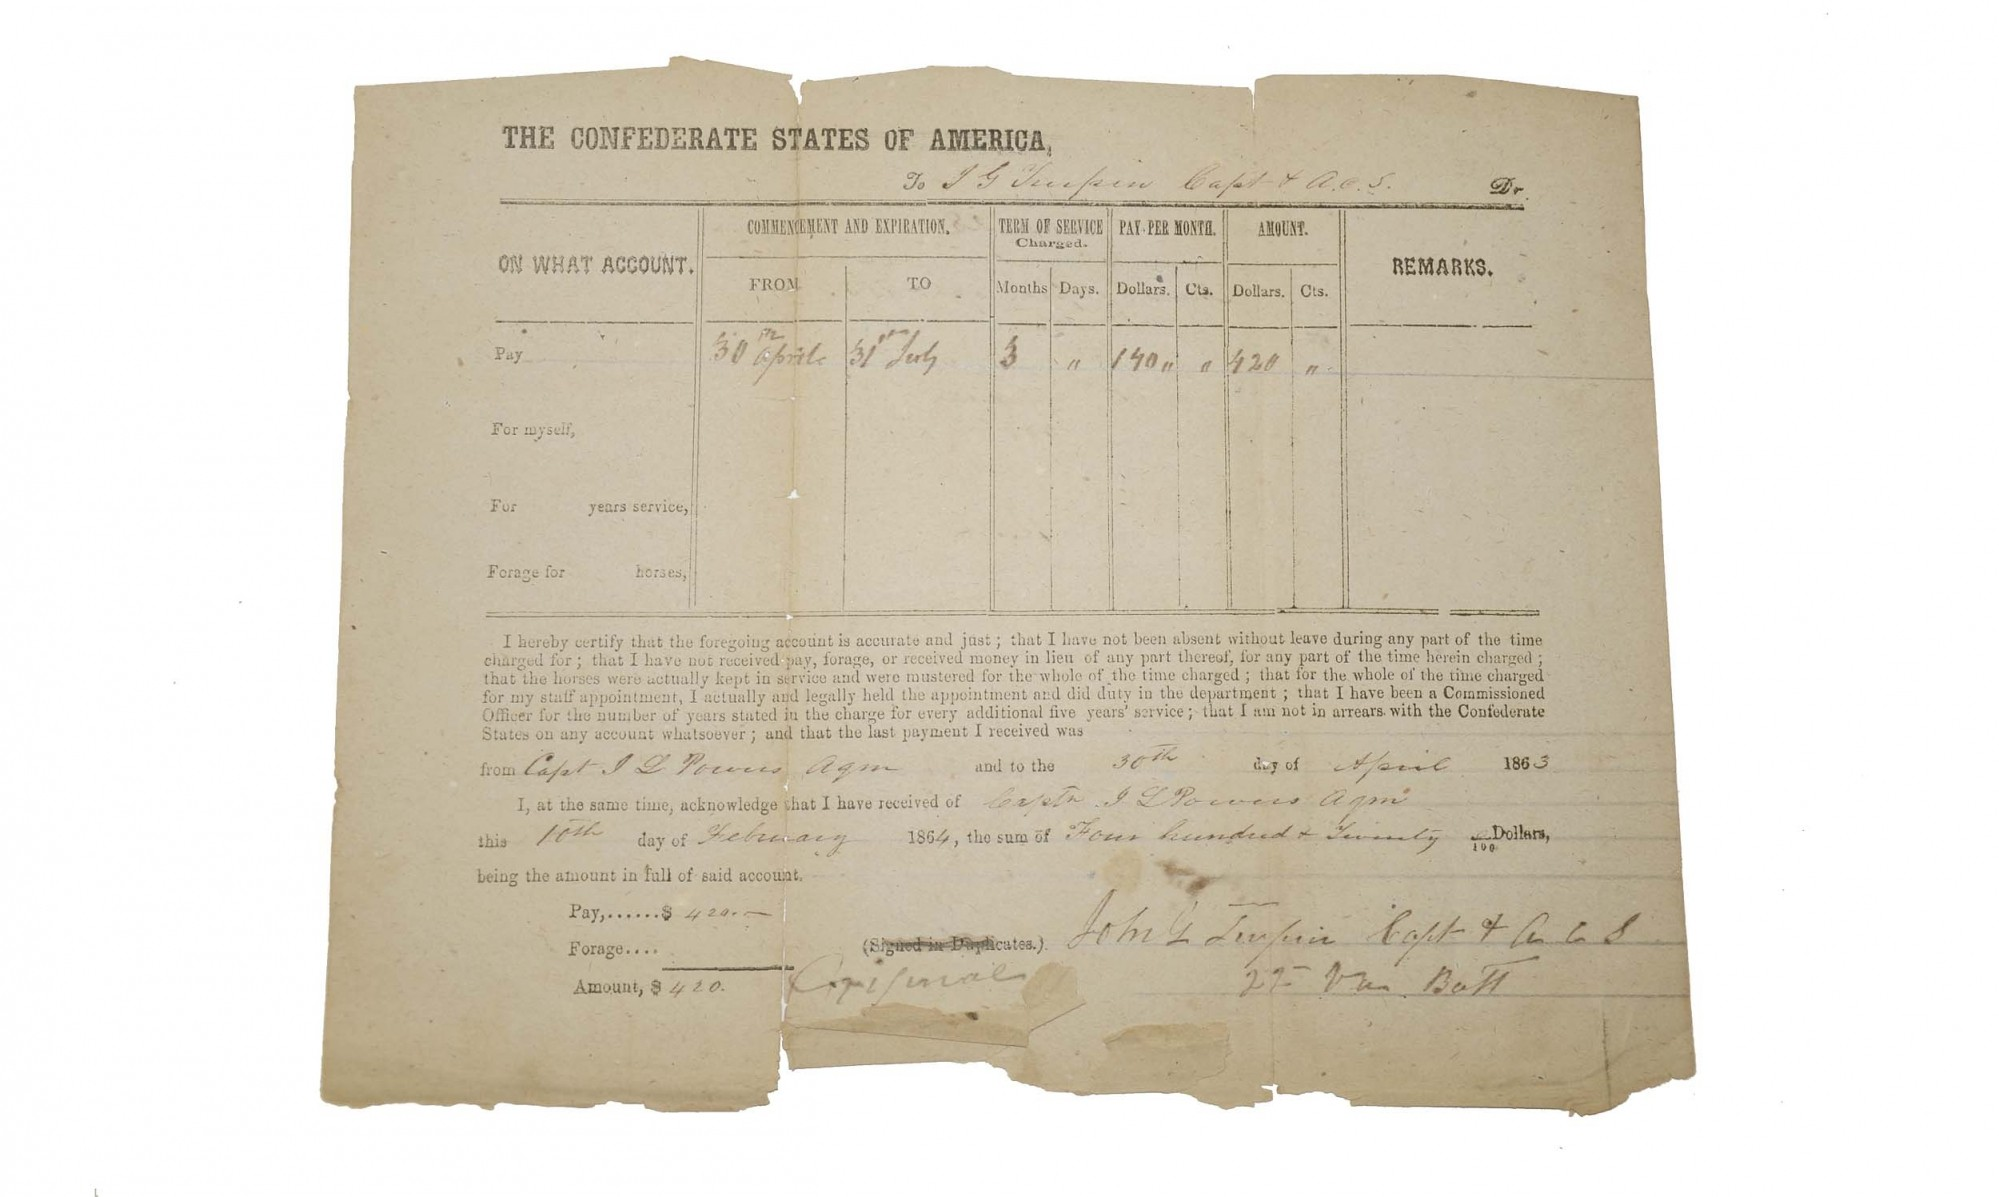 CONFEDERATE DOCUMENT RELATING TO THE 22ND VIRGINIA BATTALION